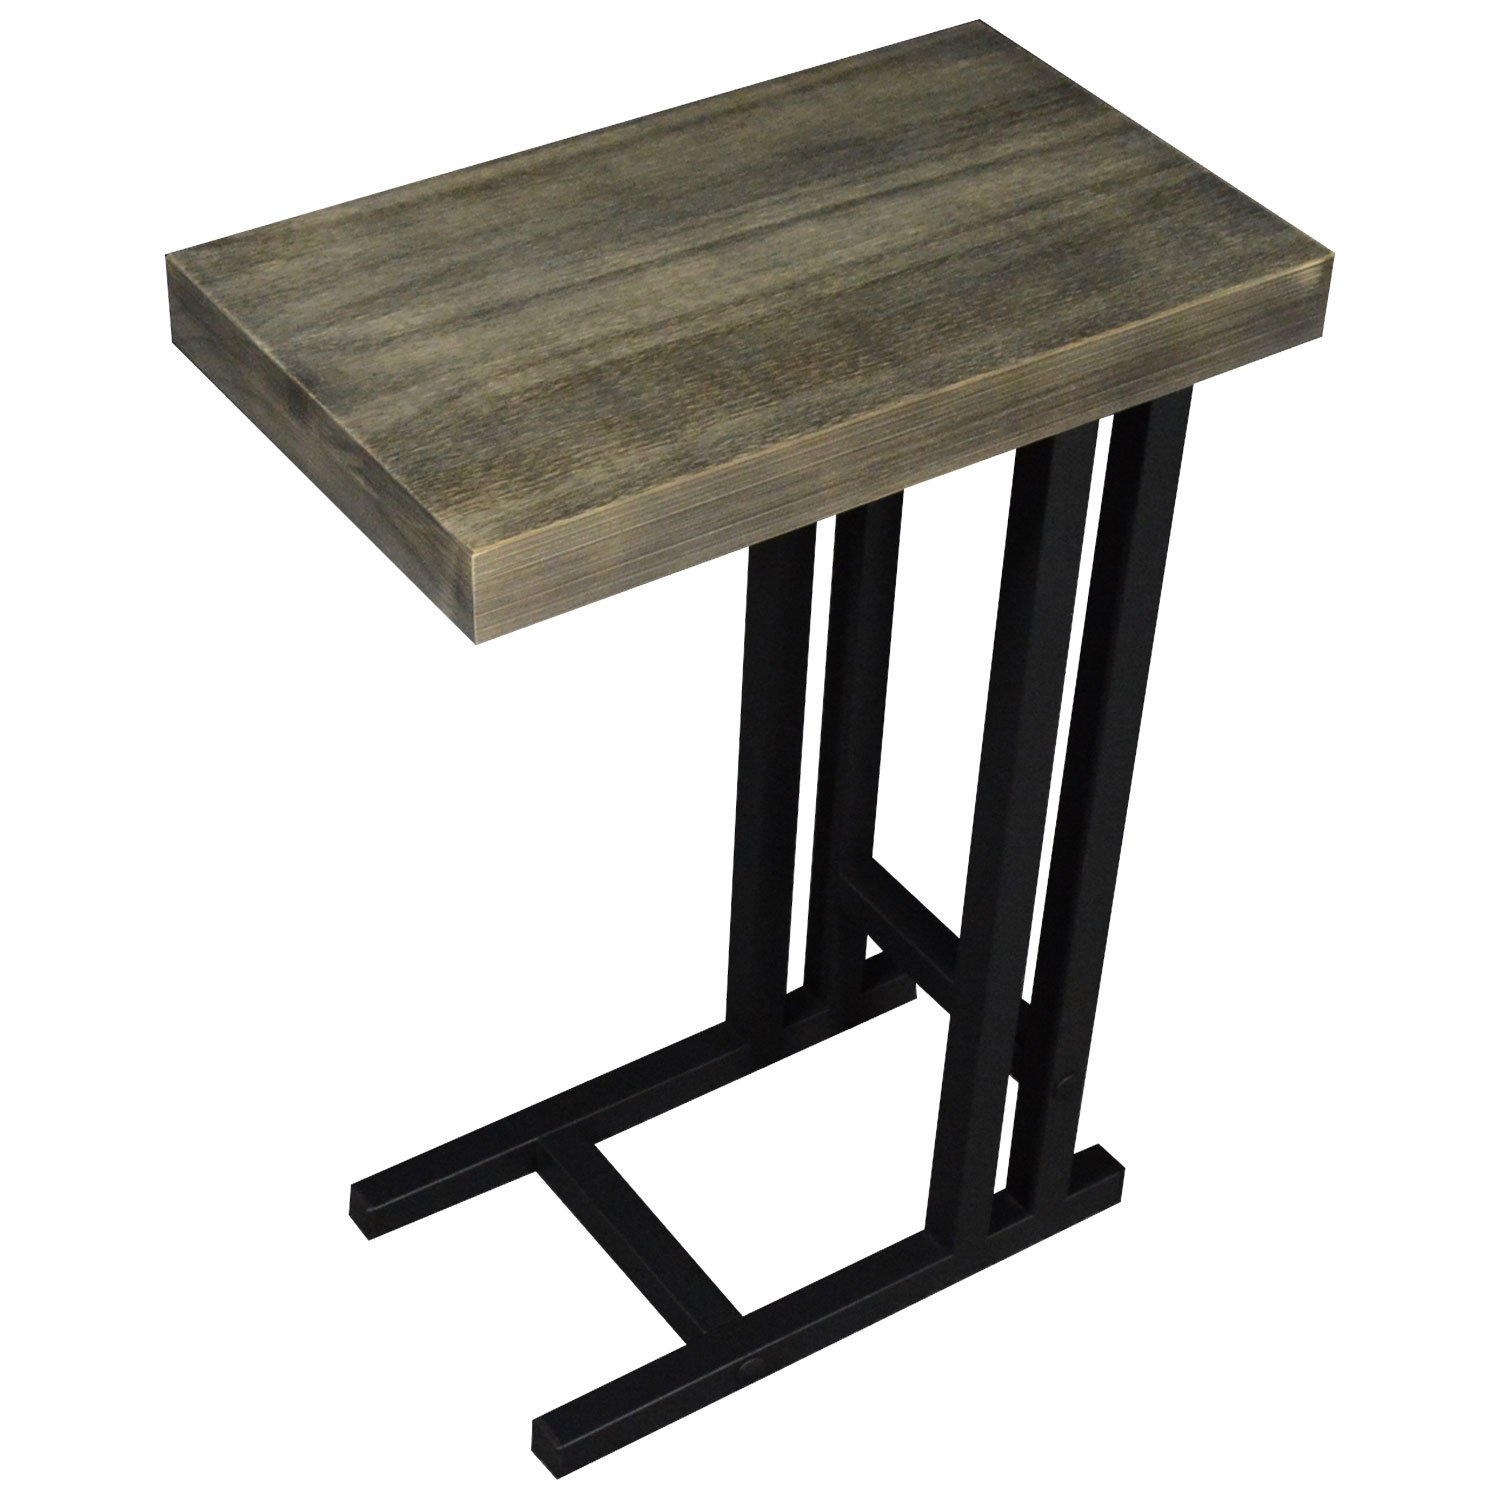 The Alex C Table/End Table/Laptop Stand, Solid Wood Top w/Black Welded Steel